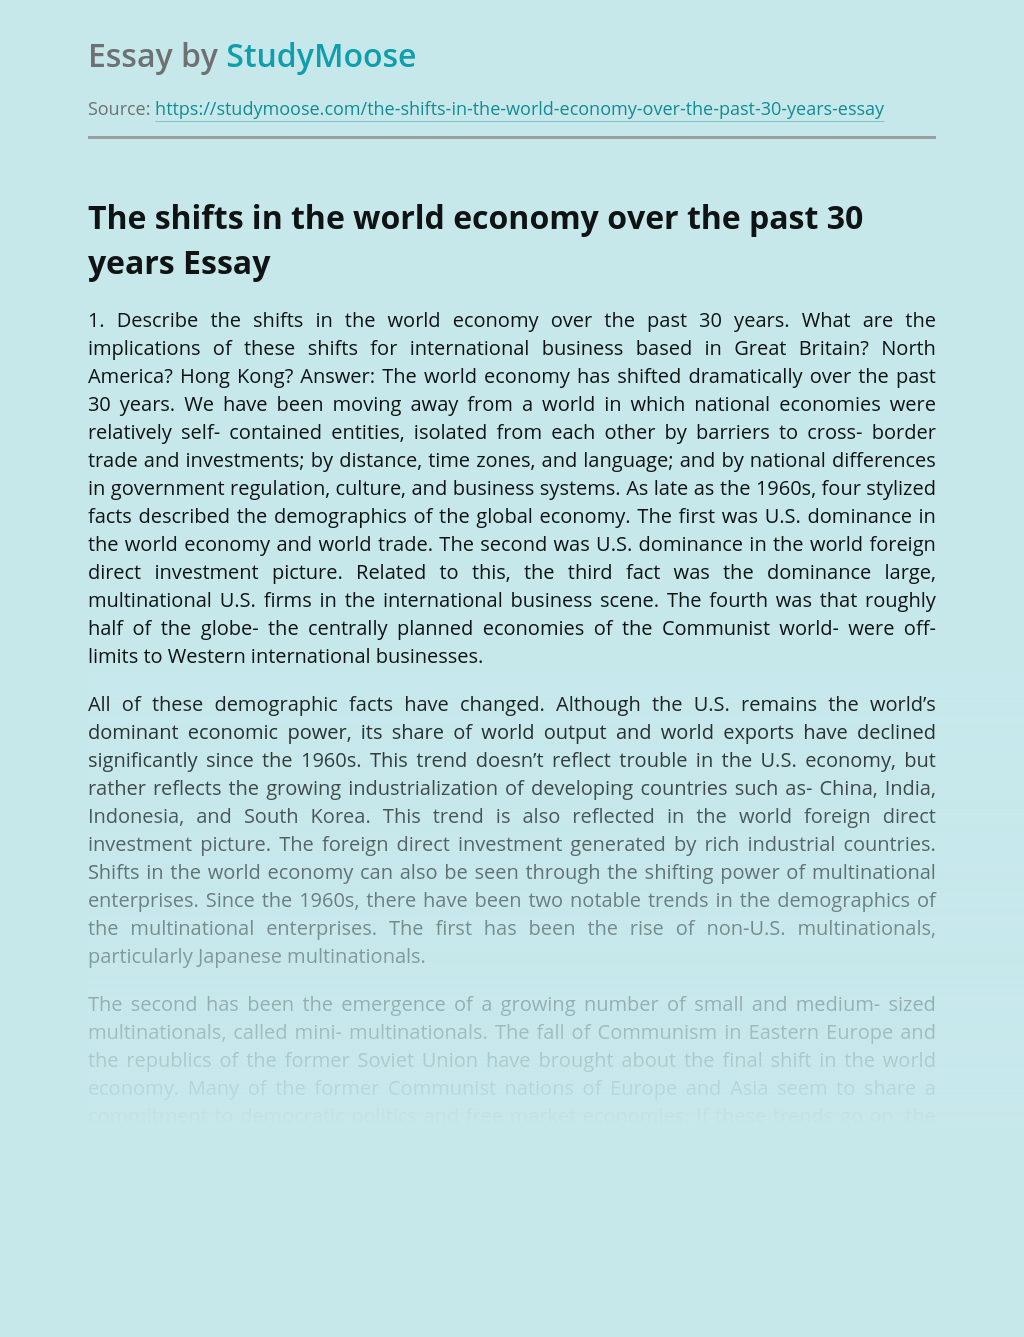 The shifts in the world economy over the past 30 years